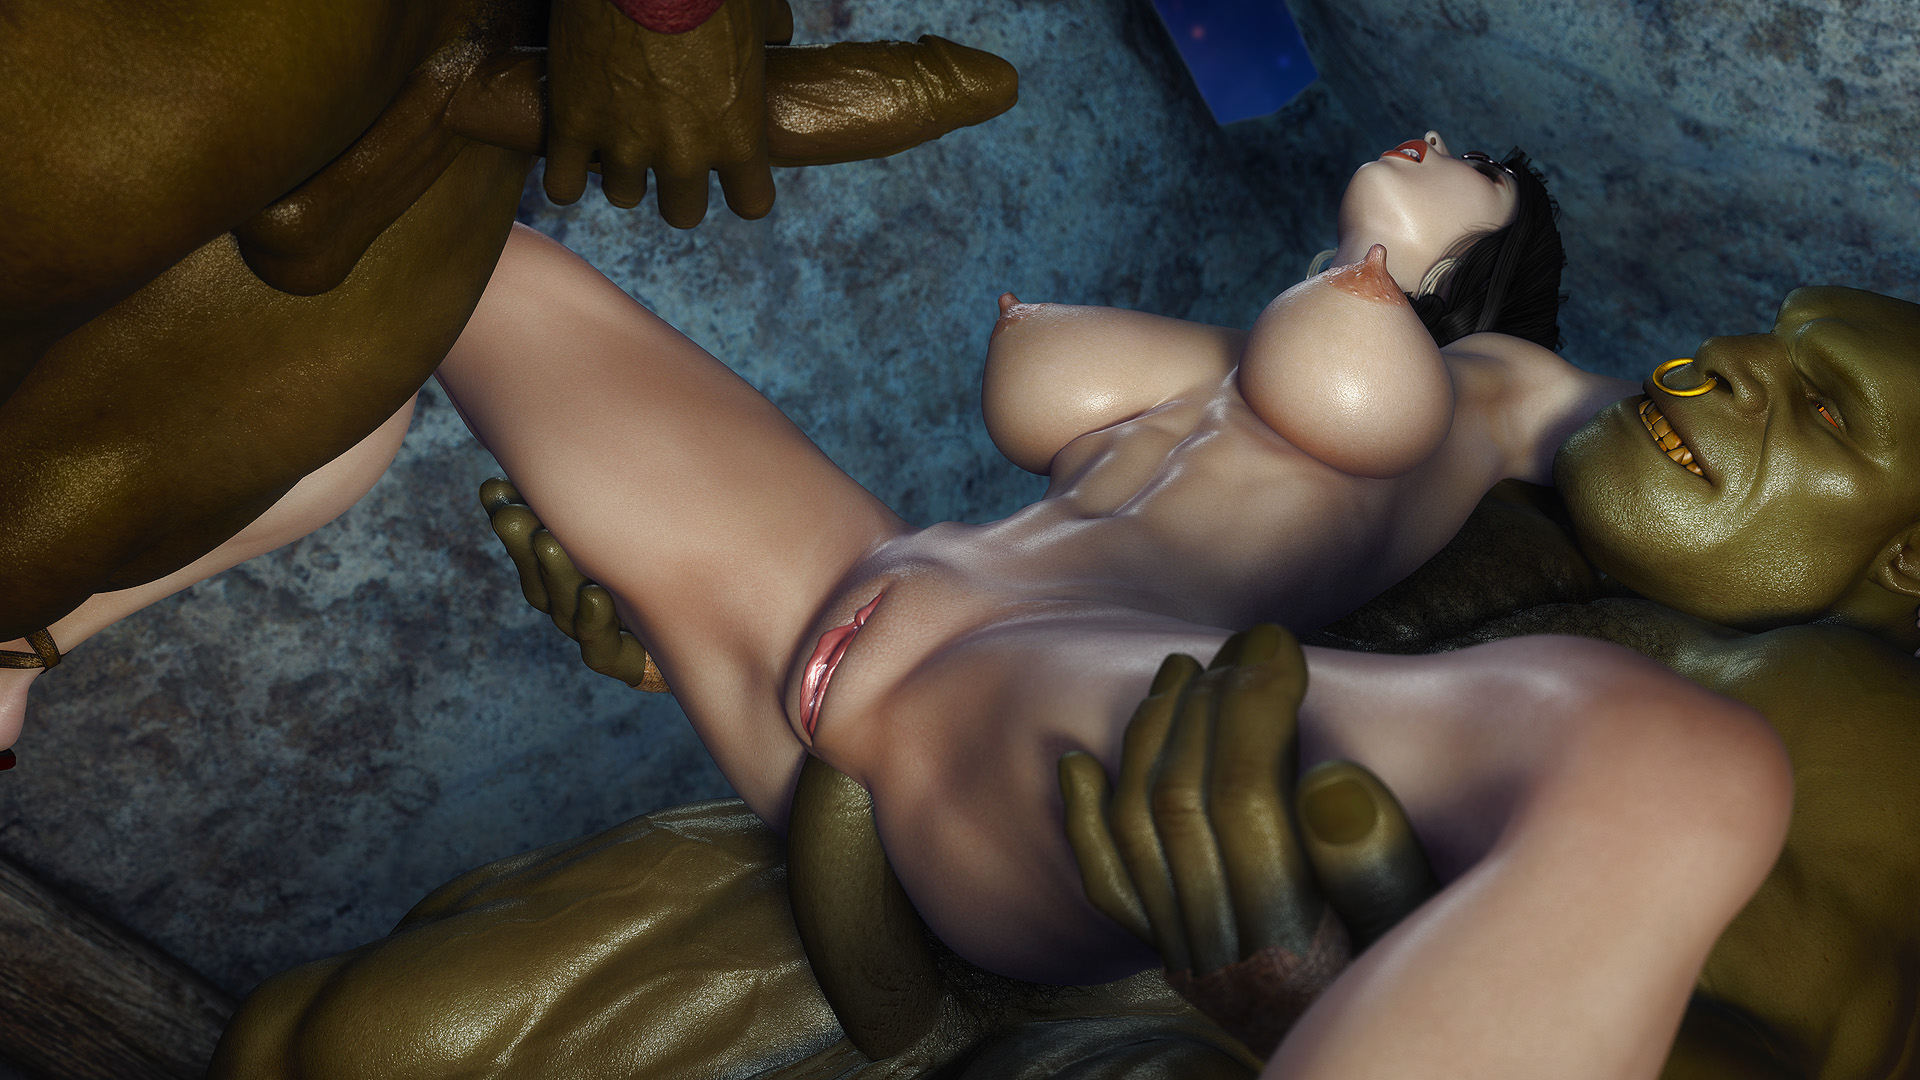 3d monsters porn videos 3gp nude photo